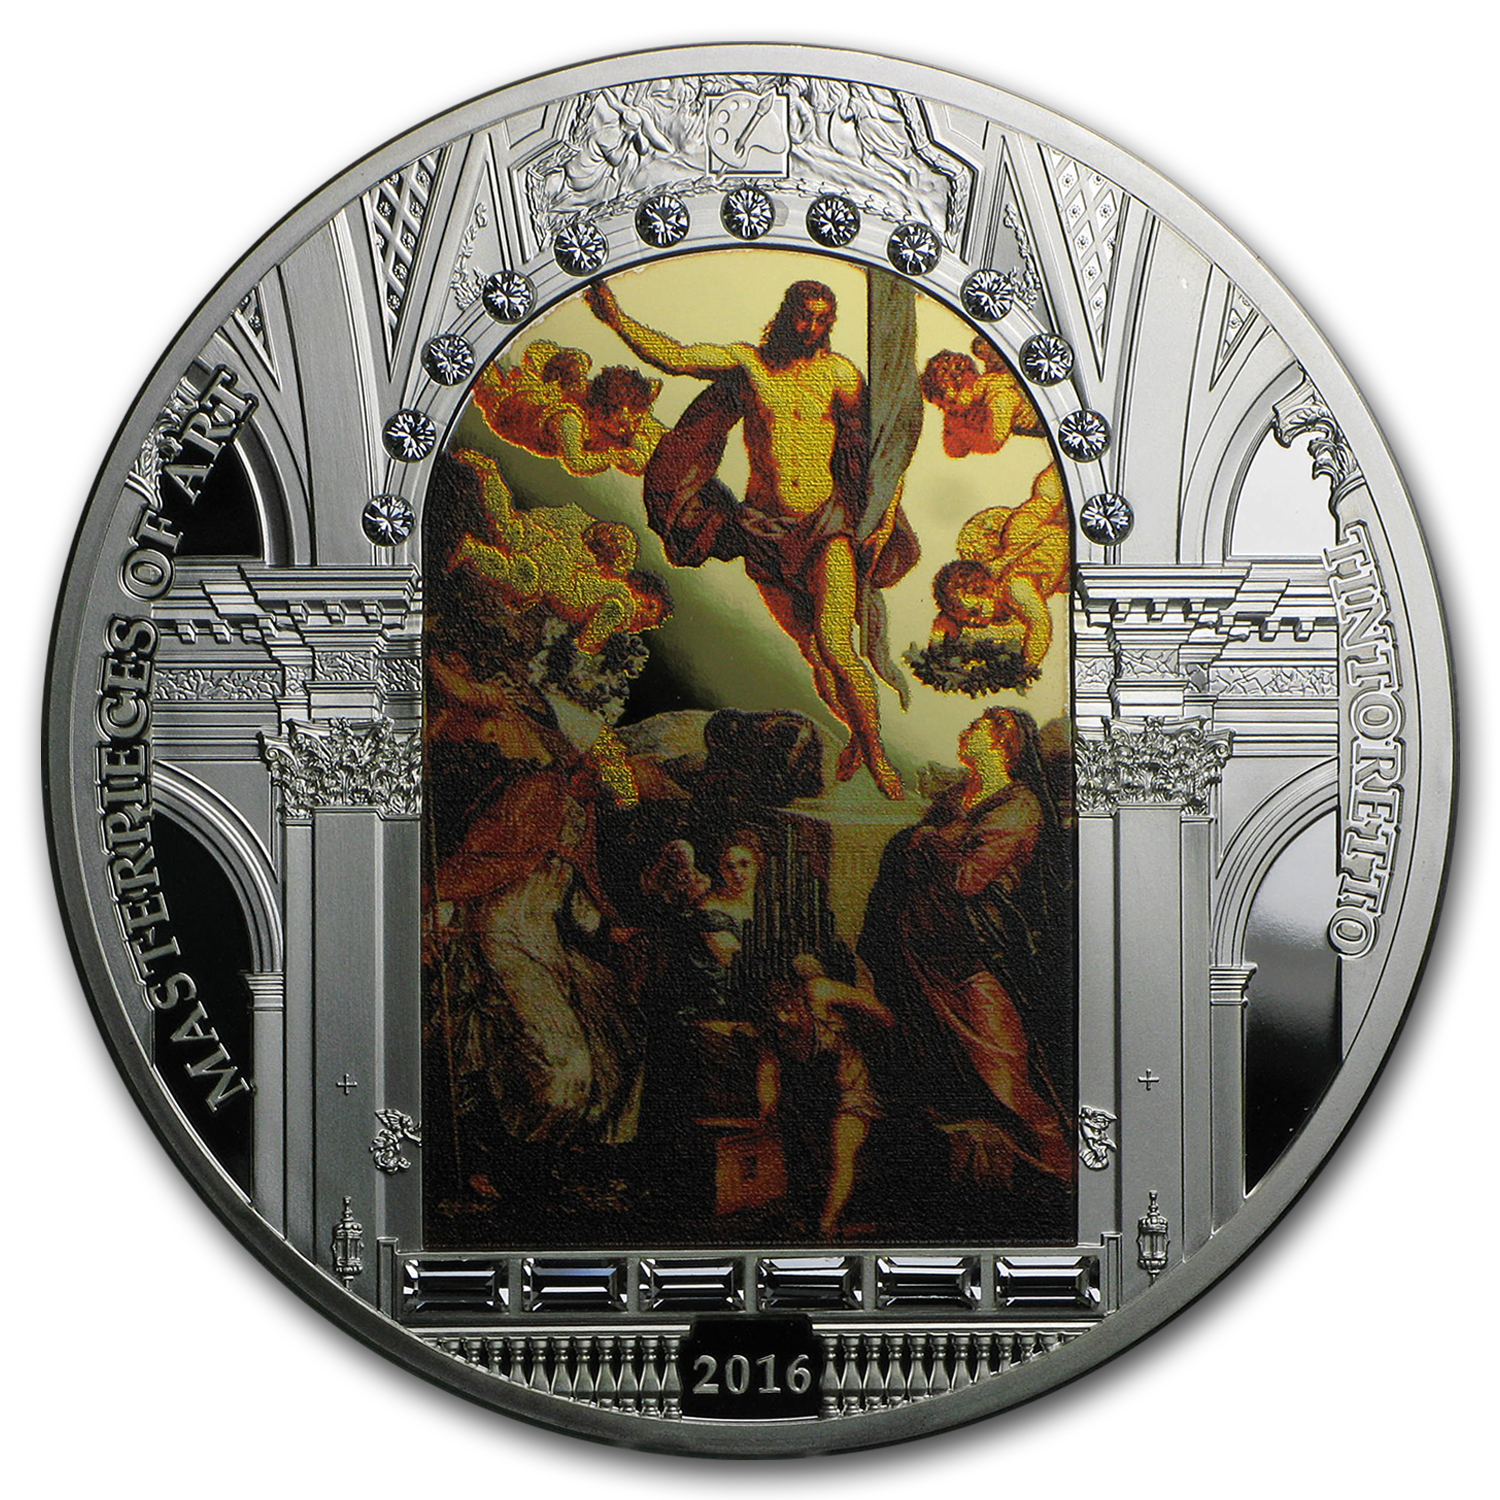 2016 Cook Islands 3 oz Silver The Resurrection of Jesus Proof